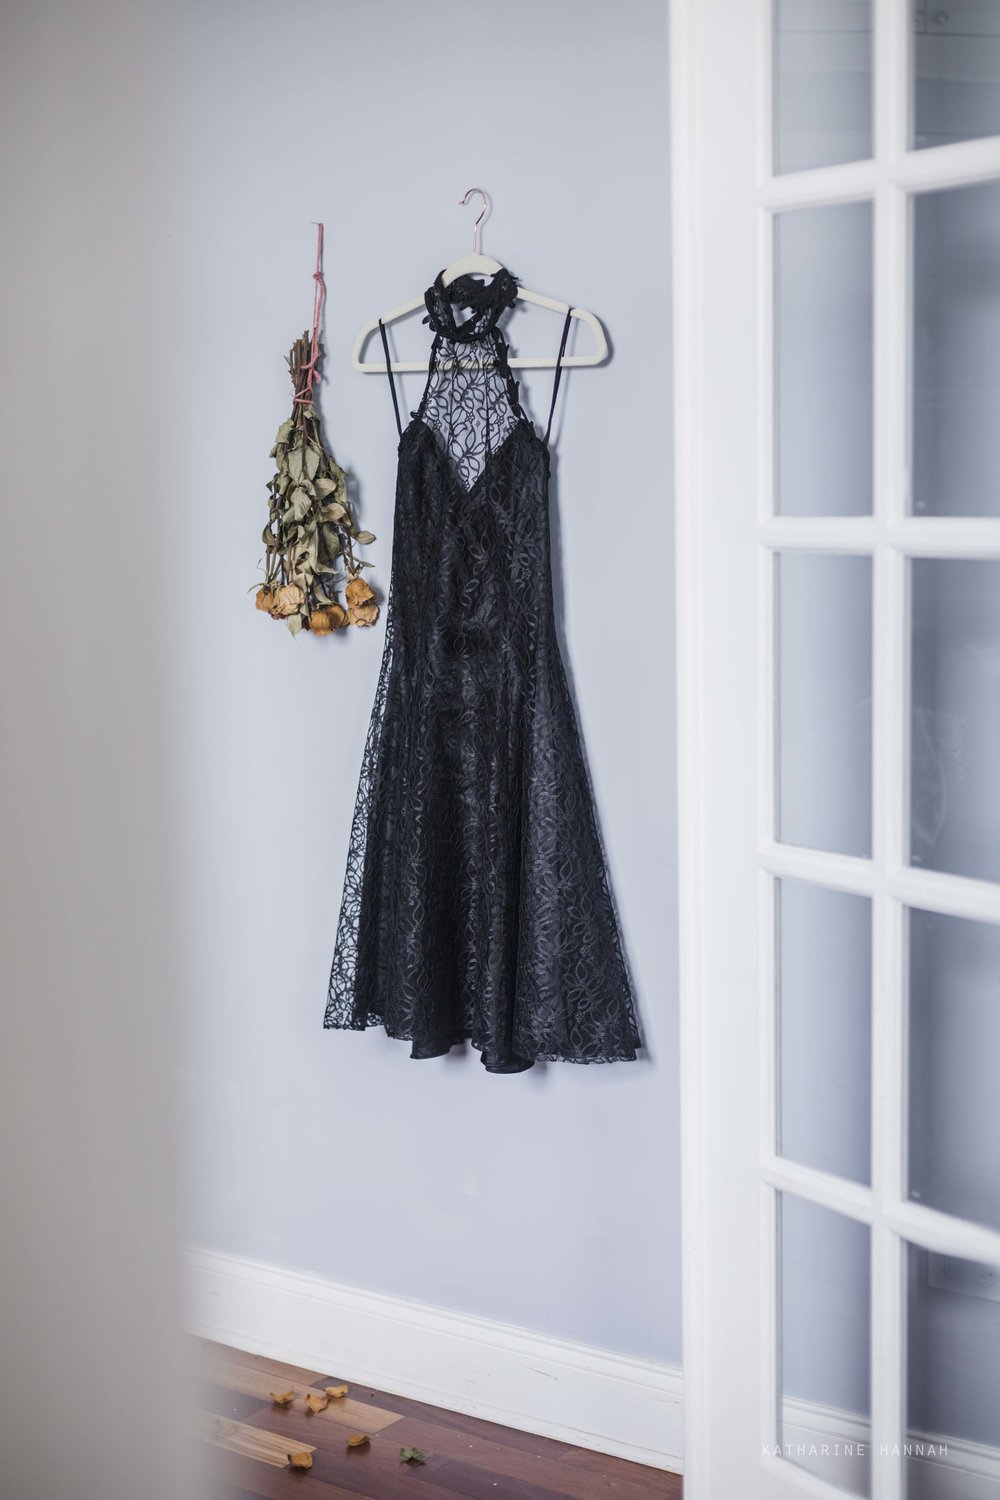 Black lace gown in Chicago photo studio